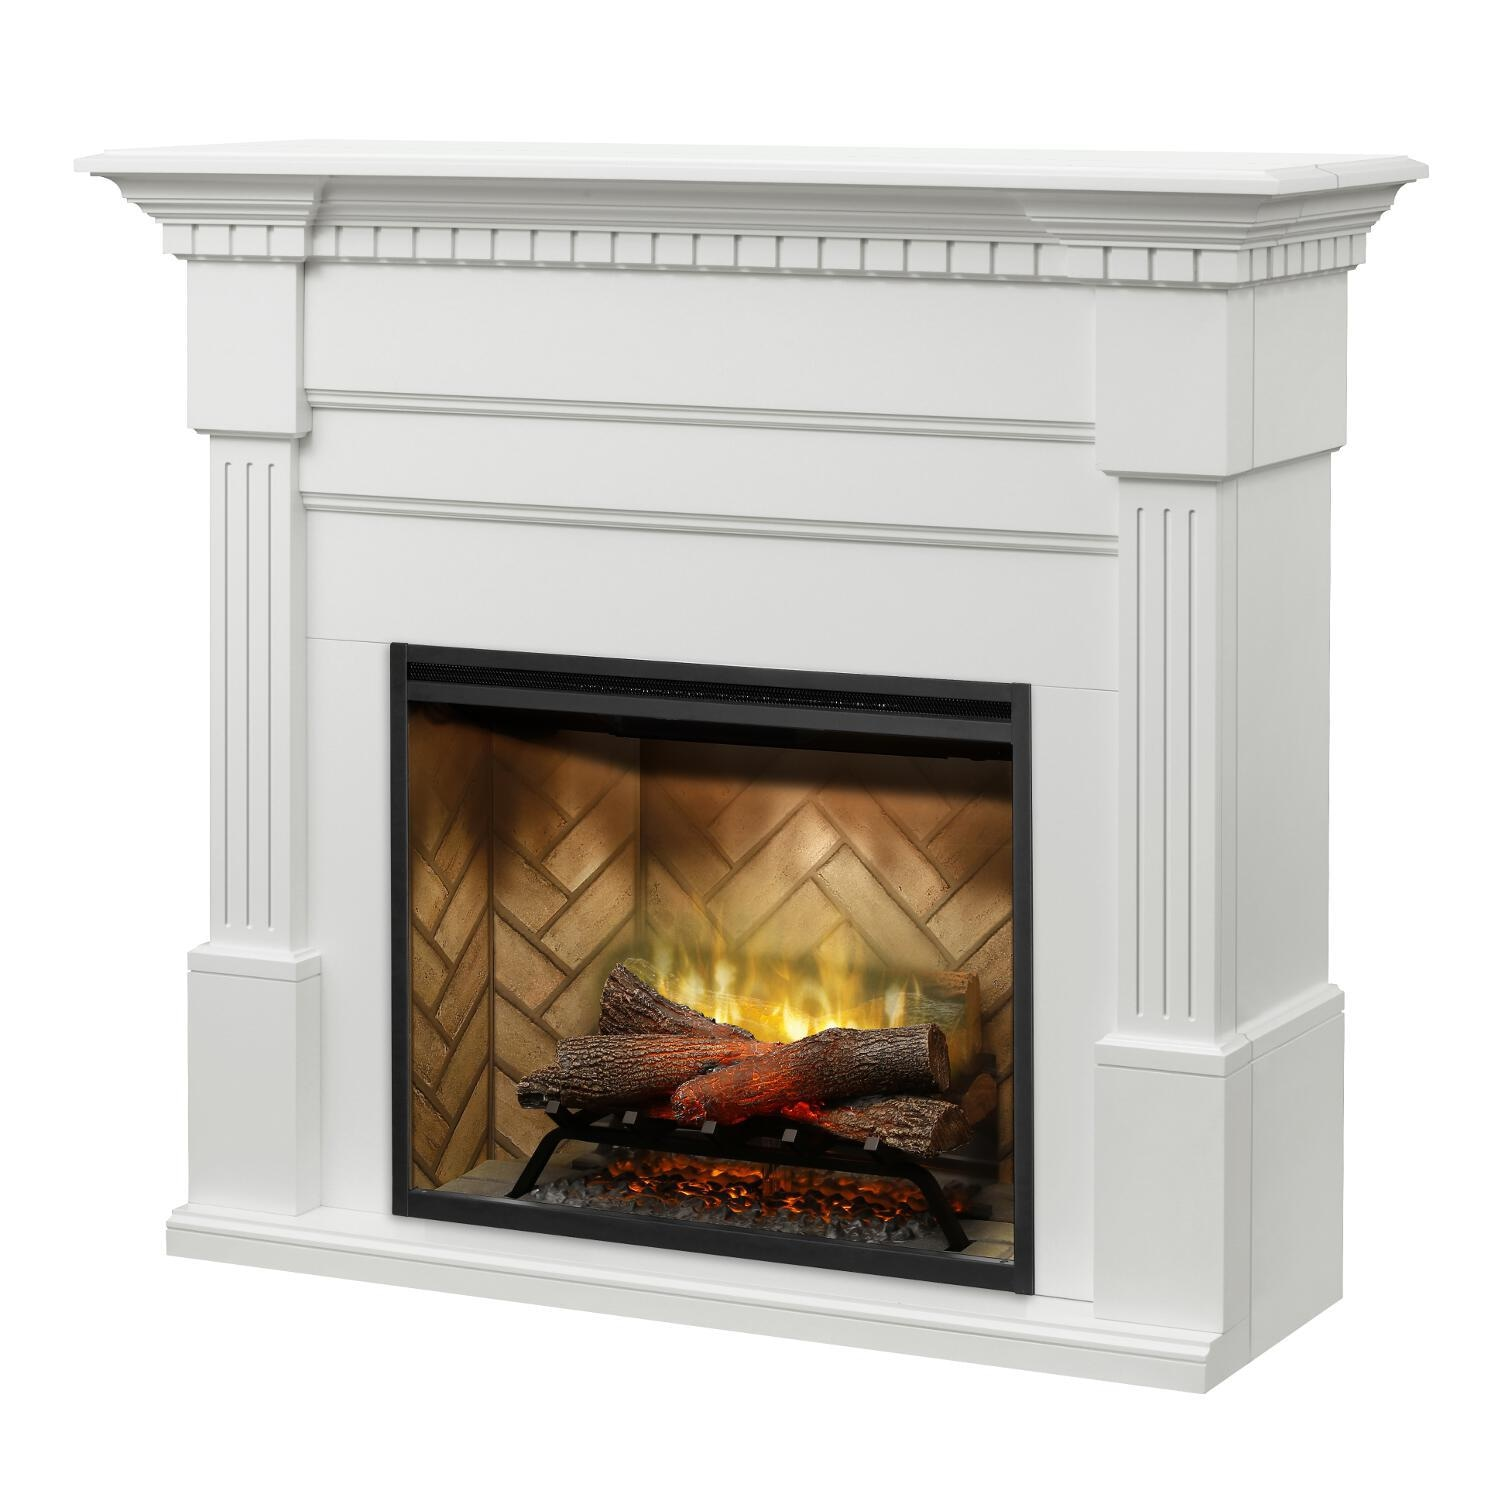 Awe Inspiring Dimplex Christina Builtrite Modular 50 Inch Electric Fireplace Mantel White Gds30Rbf 1801W Download Free Architecture Designs Scobabritishbridgeorg